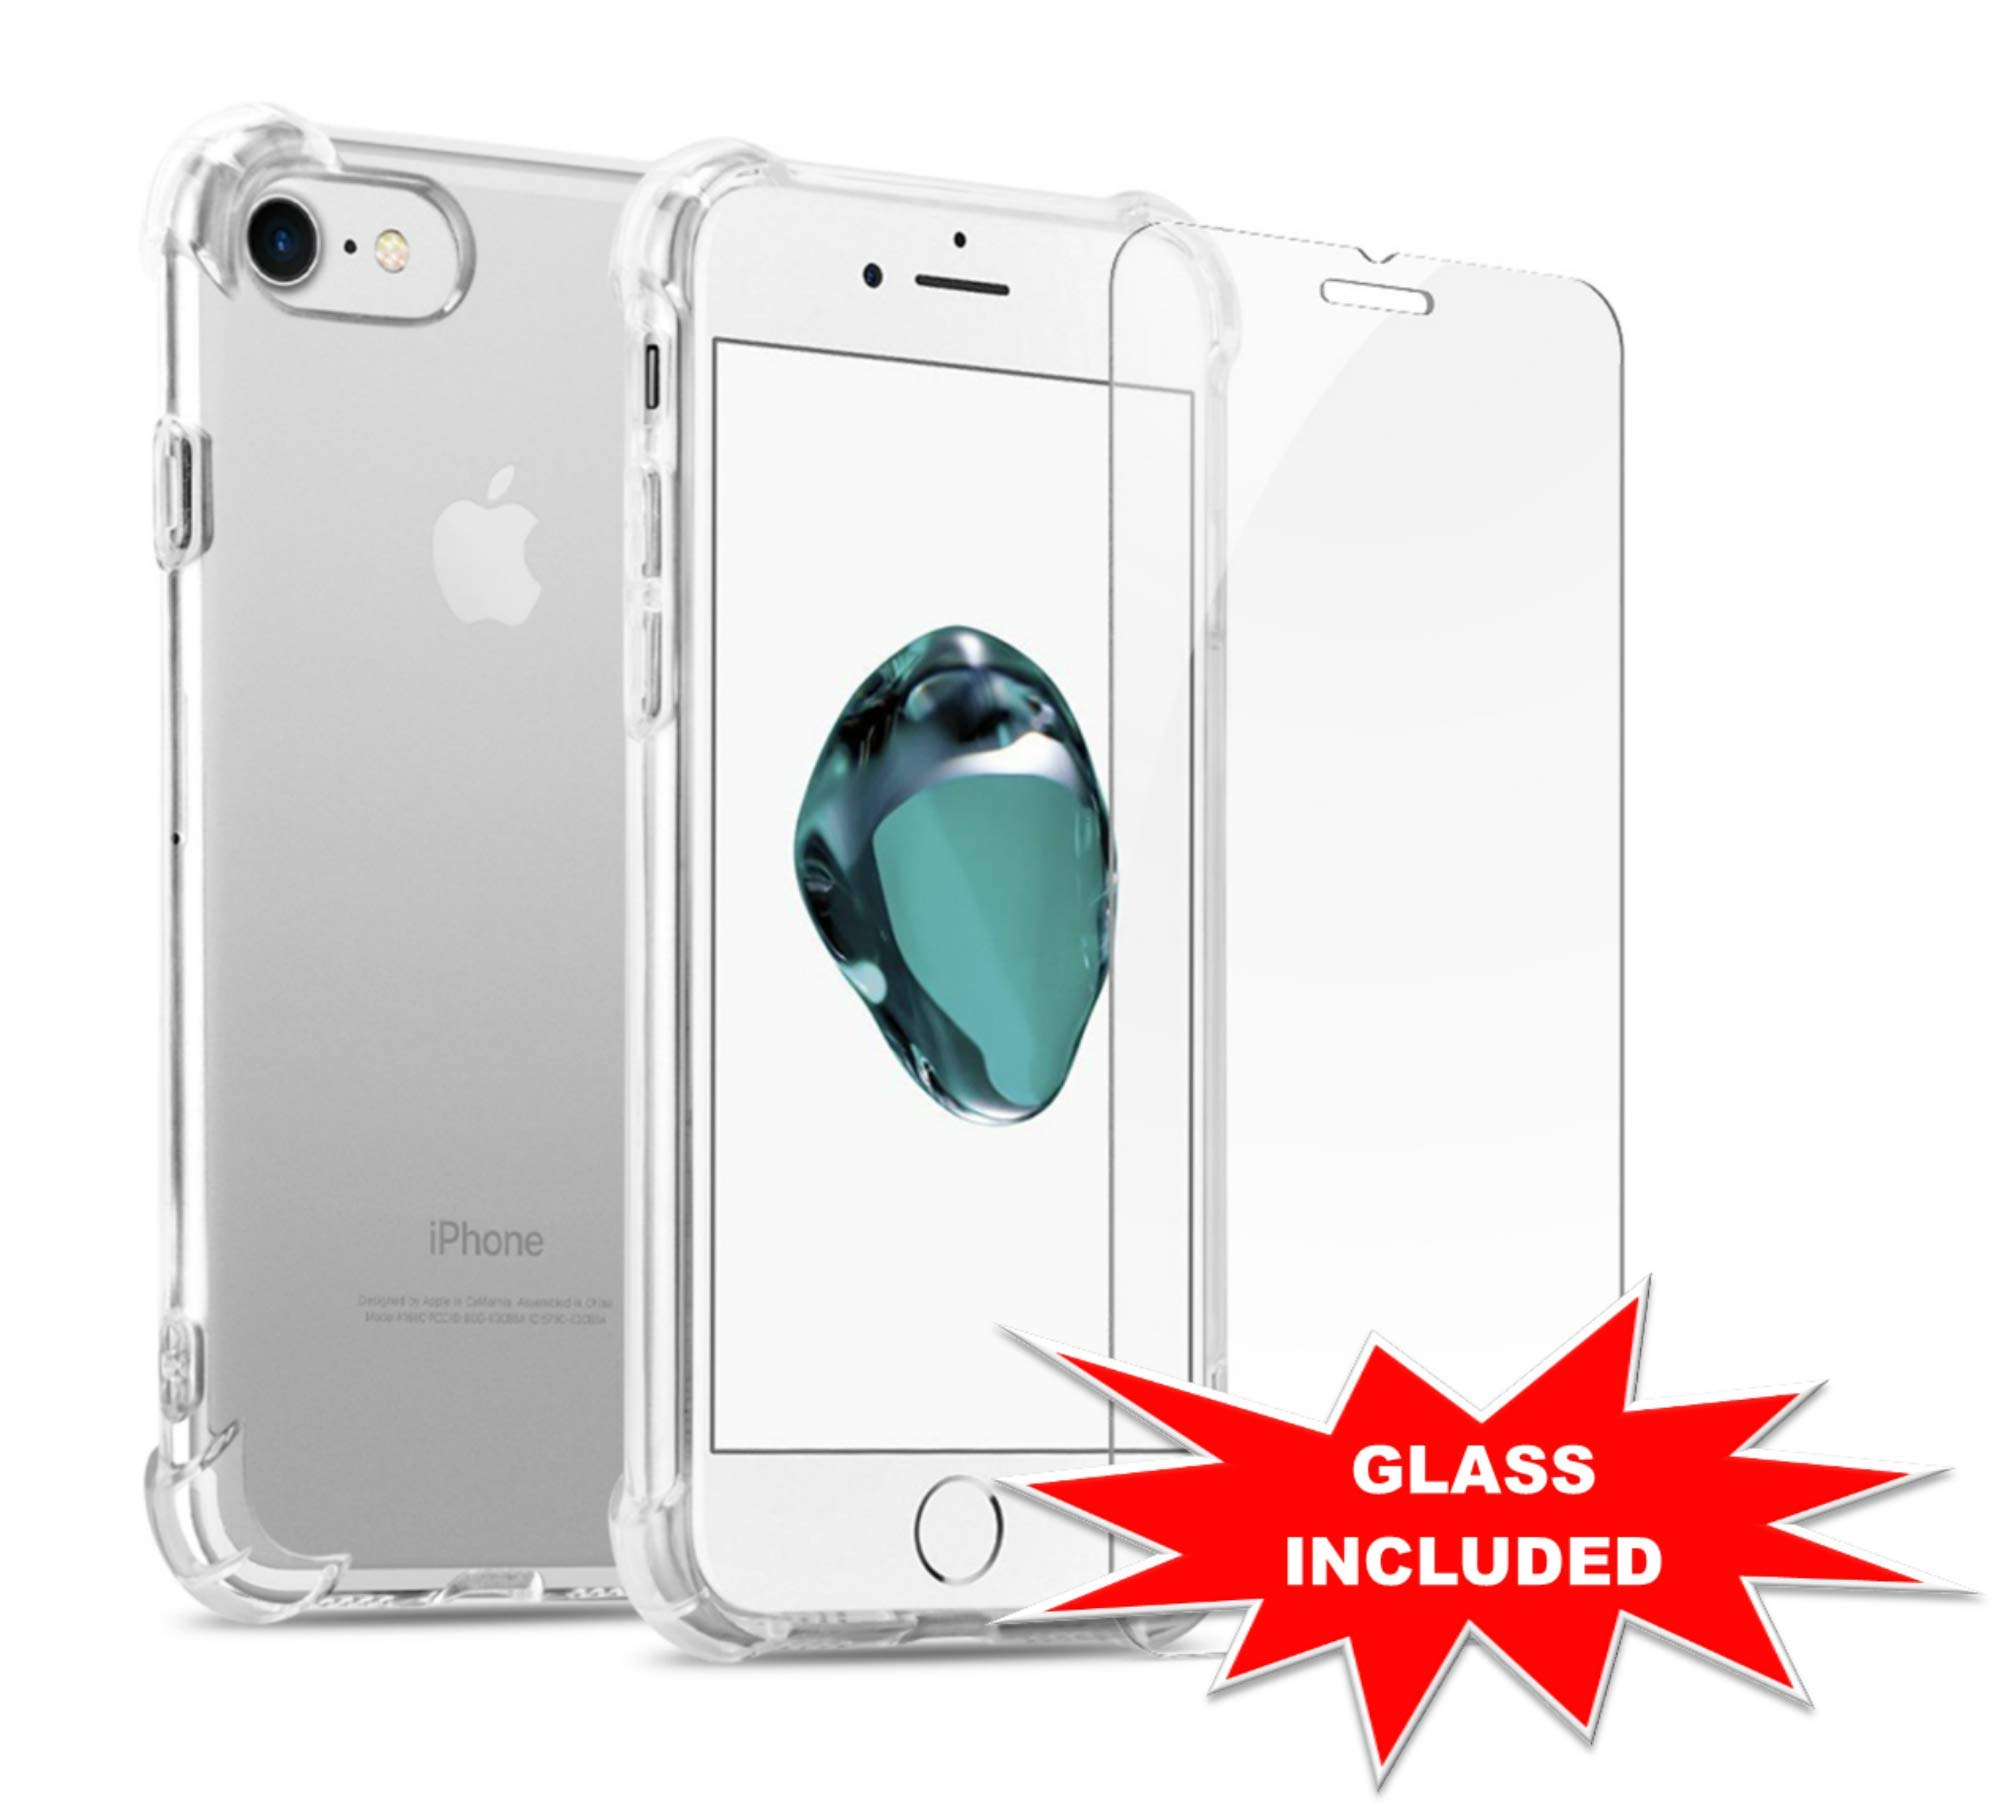 GuaGua Case for iPhone 7 Plus, iPhone 8 Plus with Tempered Glass, Protective Shock Absorption Bumper, Soft TPU Cover Skin, Built-in Screen Protector - Clear